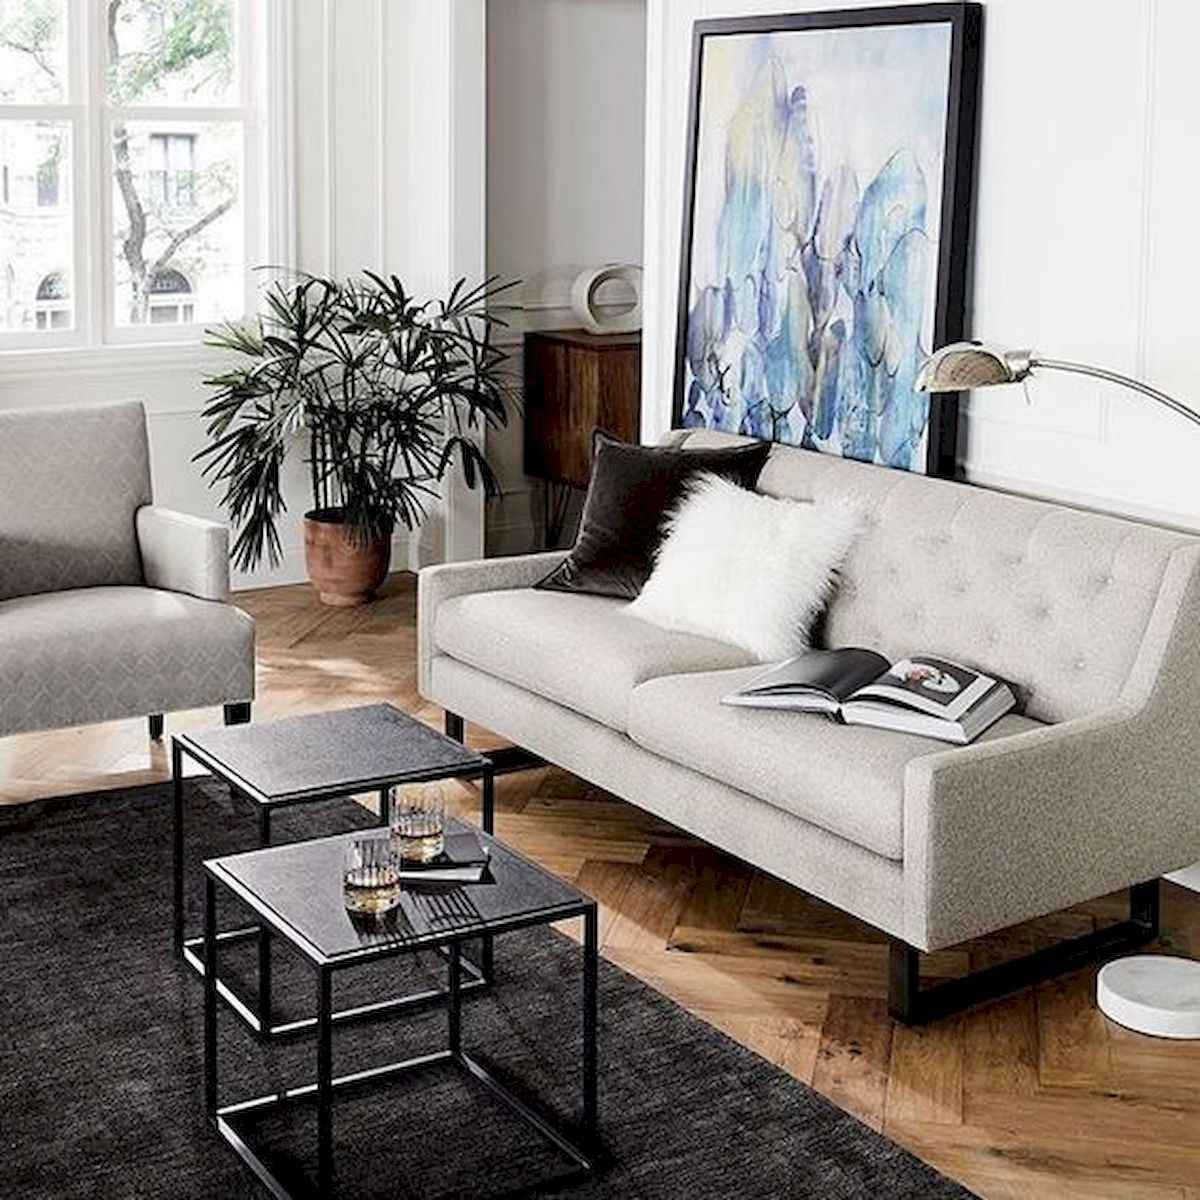 50+ Genius Small Living Room Decor Ideas And Remodel for Your First Apartment (5)